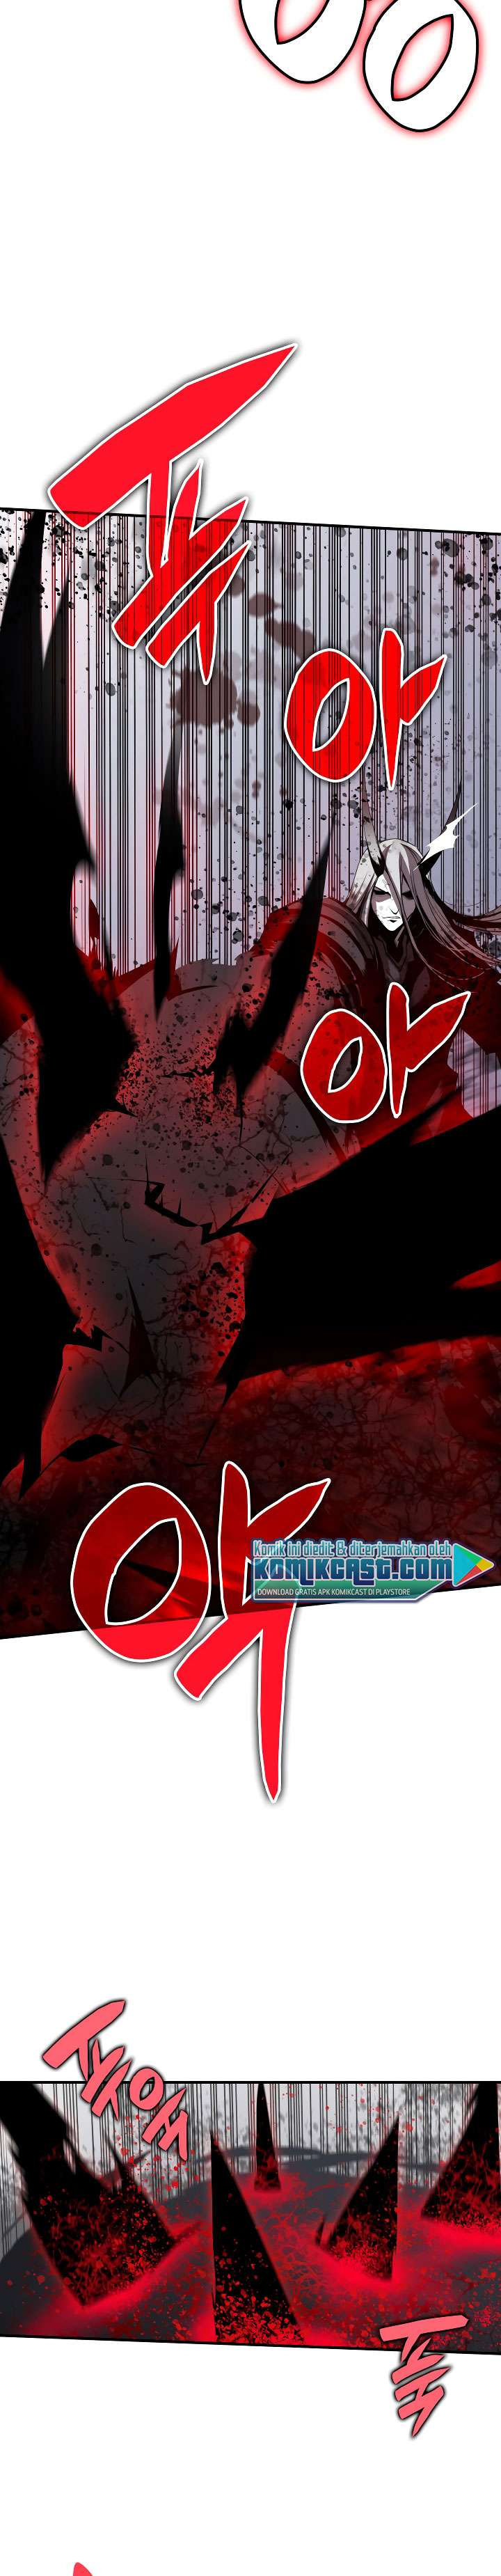 Worn and Torn Newbie Chapter 41 Bahasa Indonesia page 11